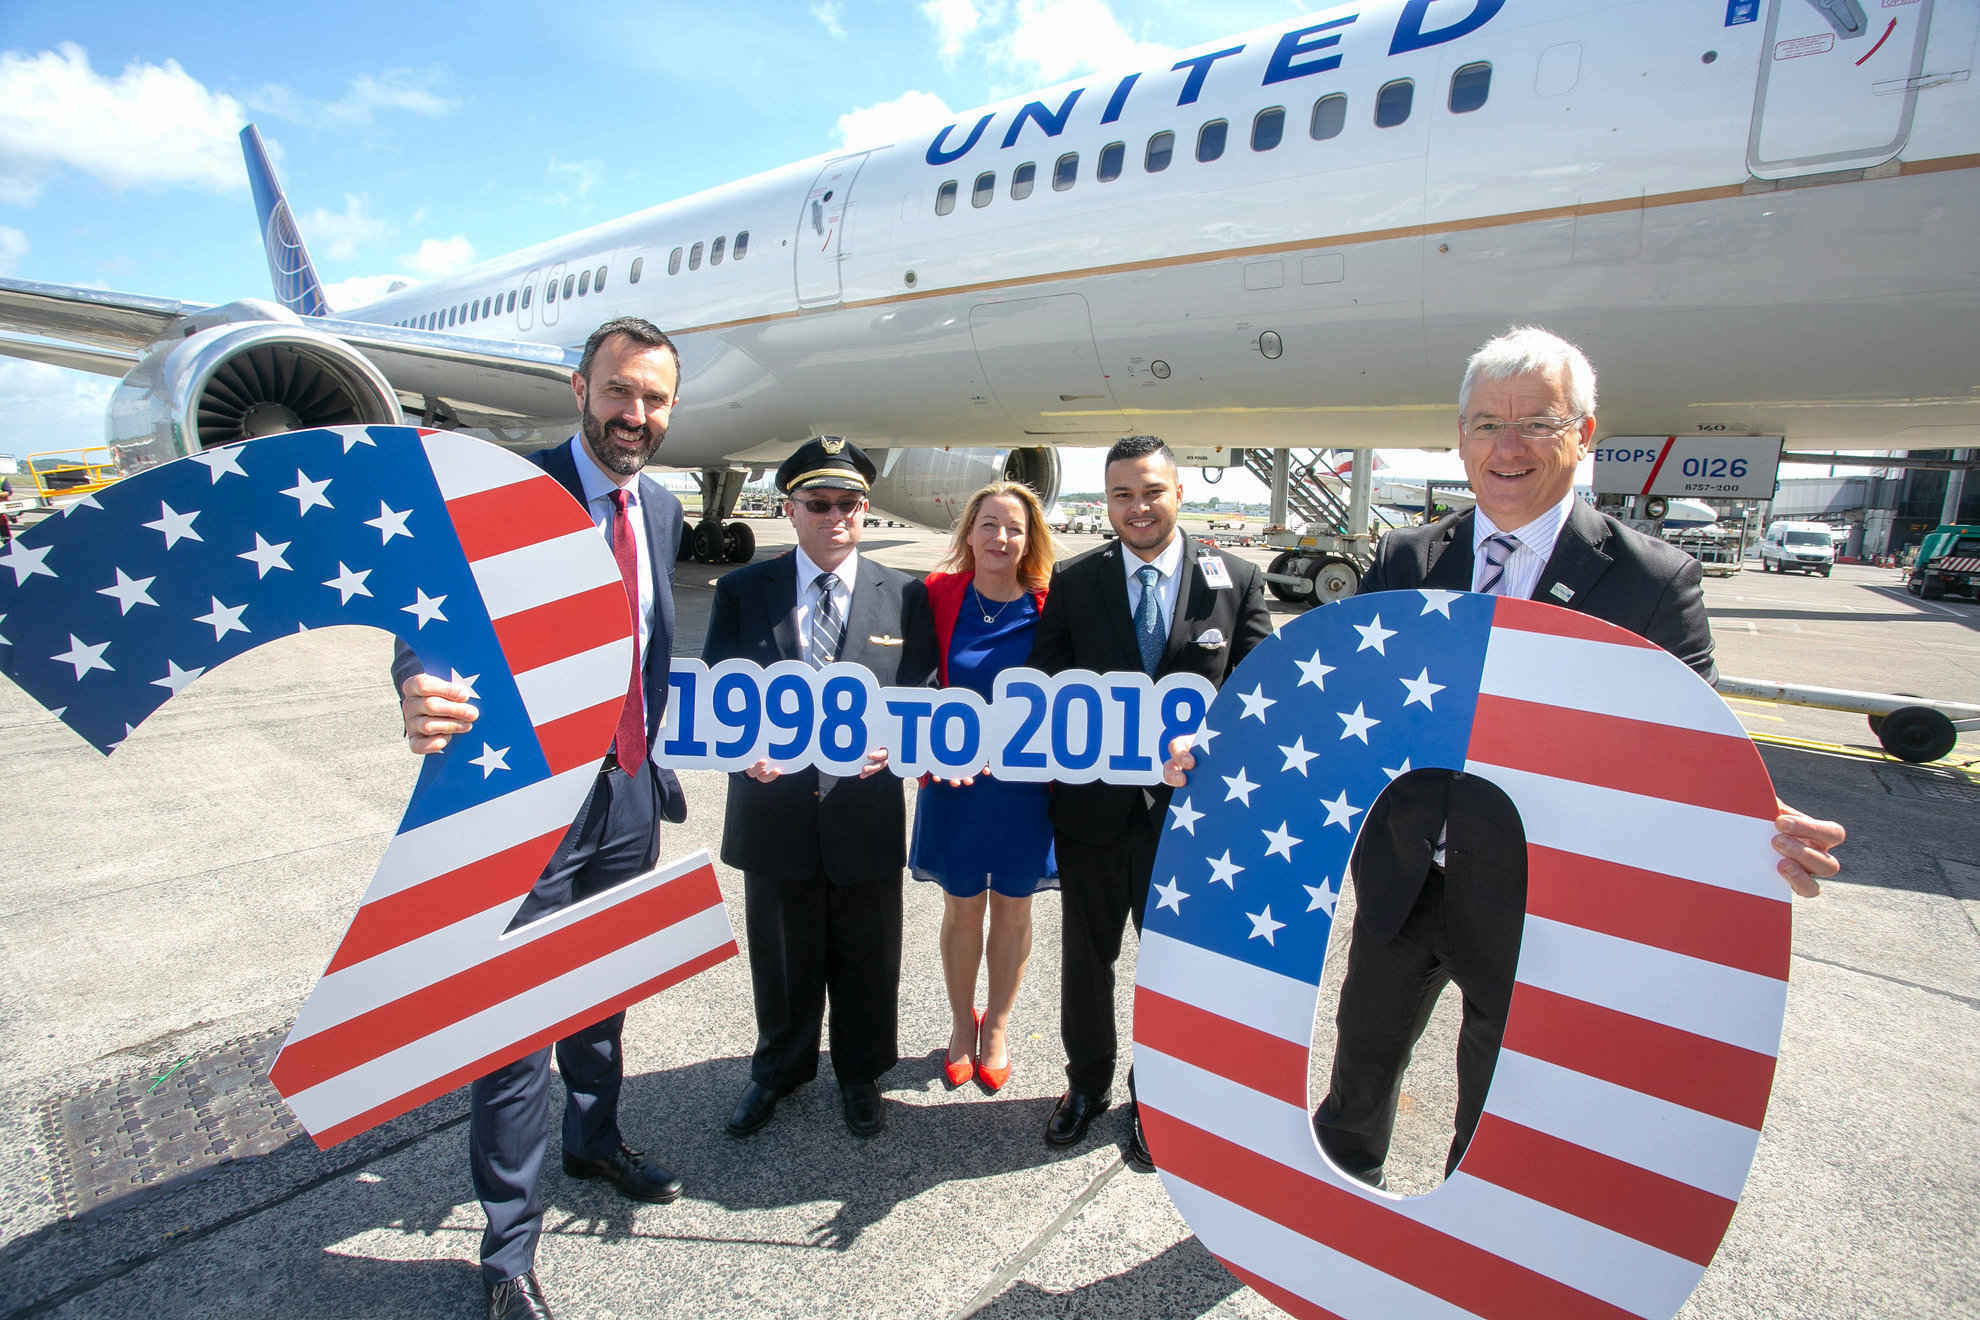 United Airlines Shannon New York